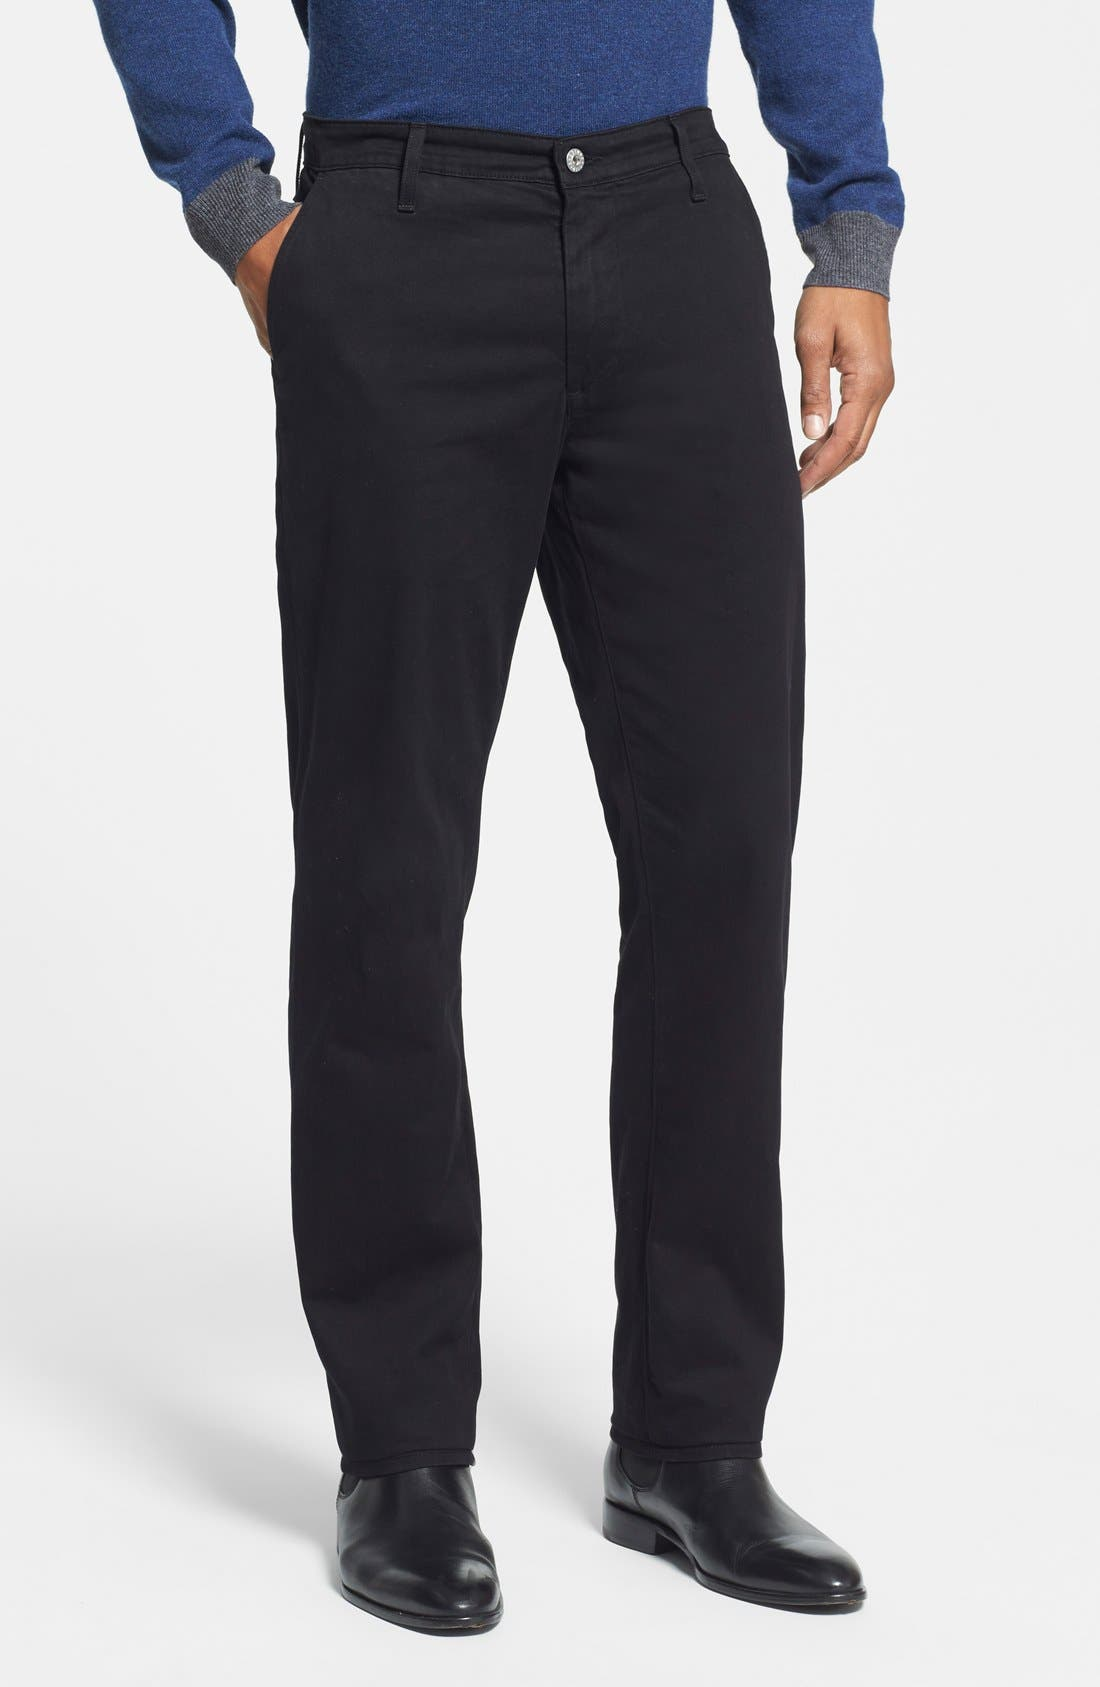 'The Lux' Tailored Straight Leg Chinos,                             Main thumbnail 3, color,